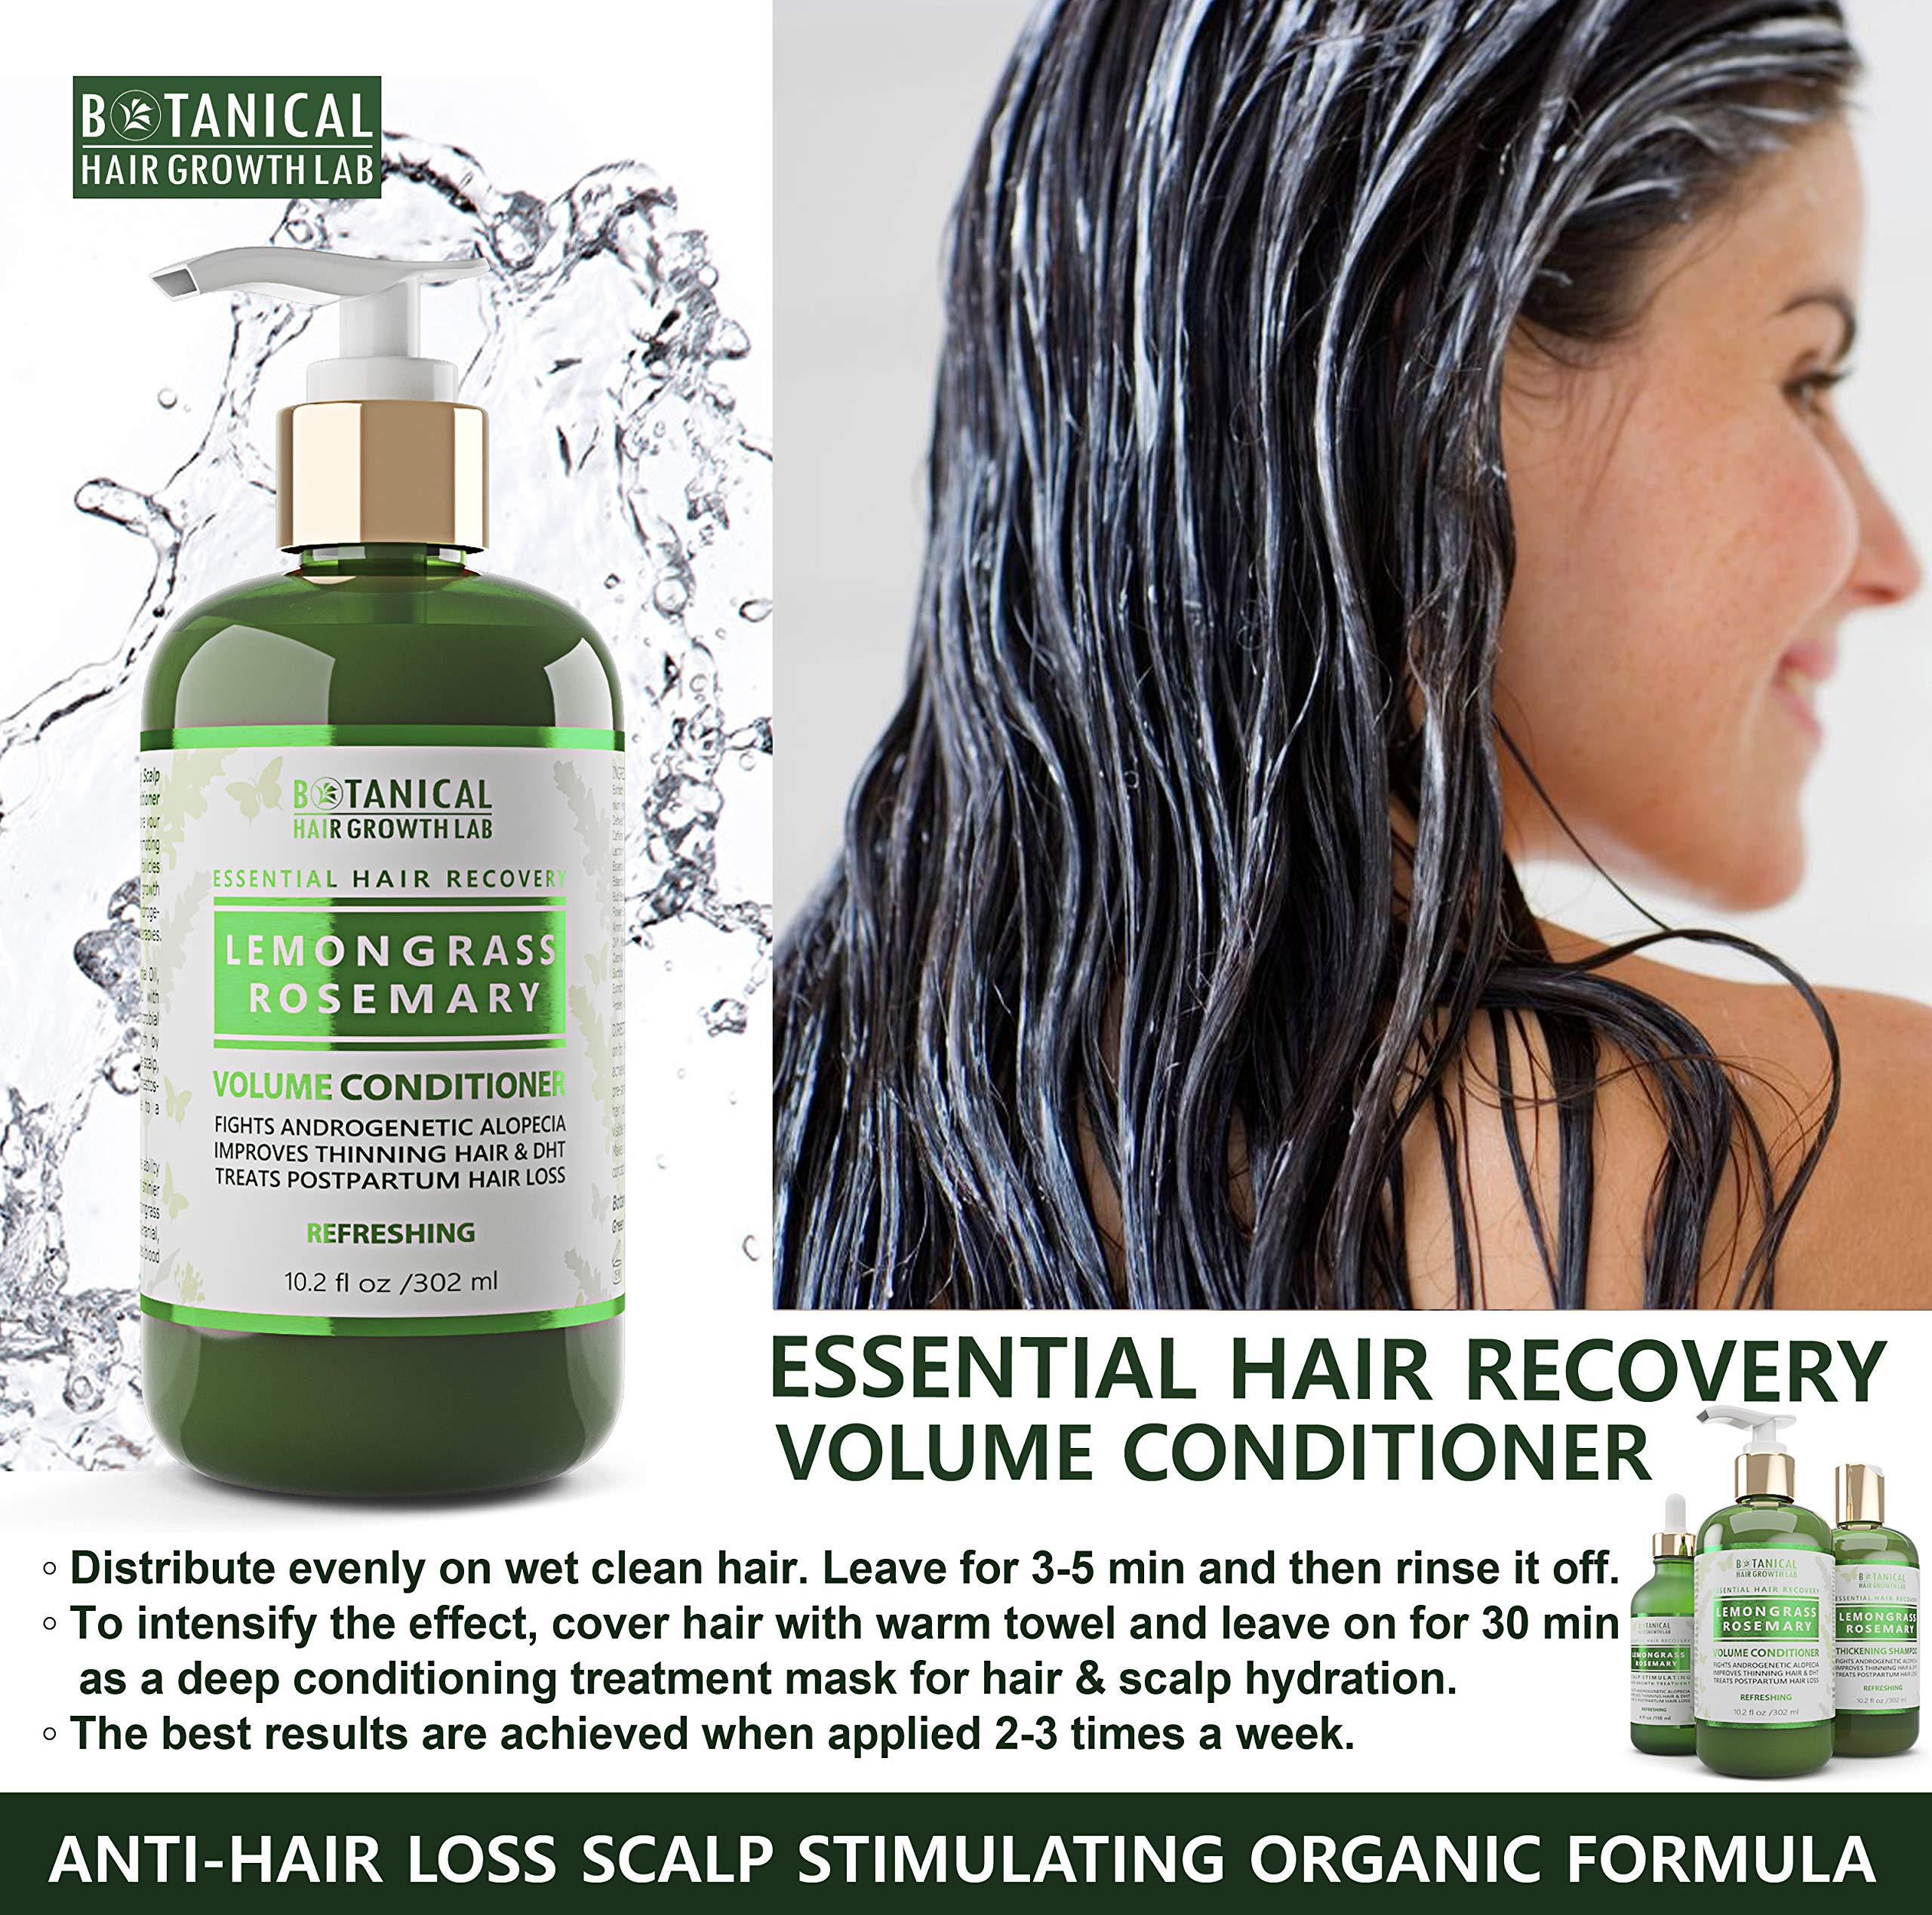 Botanical Hair Growth Lab Anti Hair Loss Shampoo and Conditioner Lemongrass & Rosemary for Hair Thinning Prevention - Natural & Organic - Alopecia Postpartum DHT Blocker by BOTANICAL HAIR GROWTH LAB